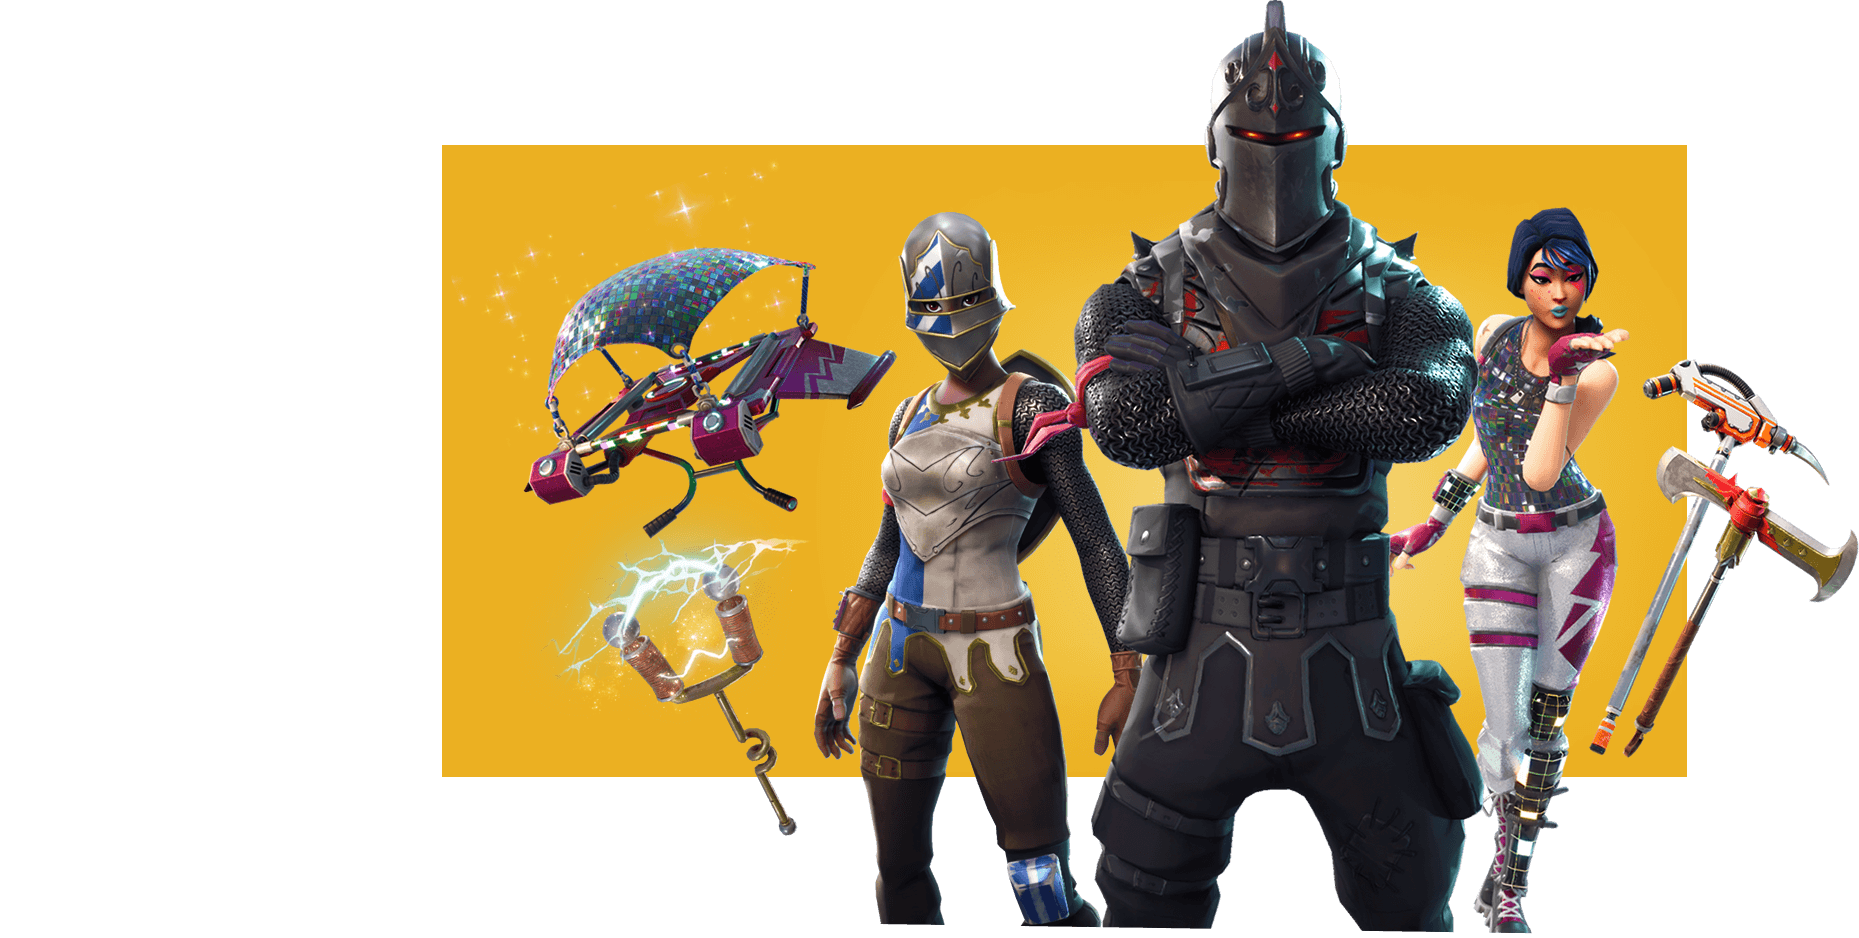 Fortnite clipart transparent background. Free png download clip